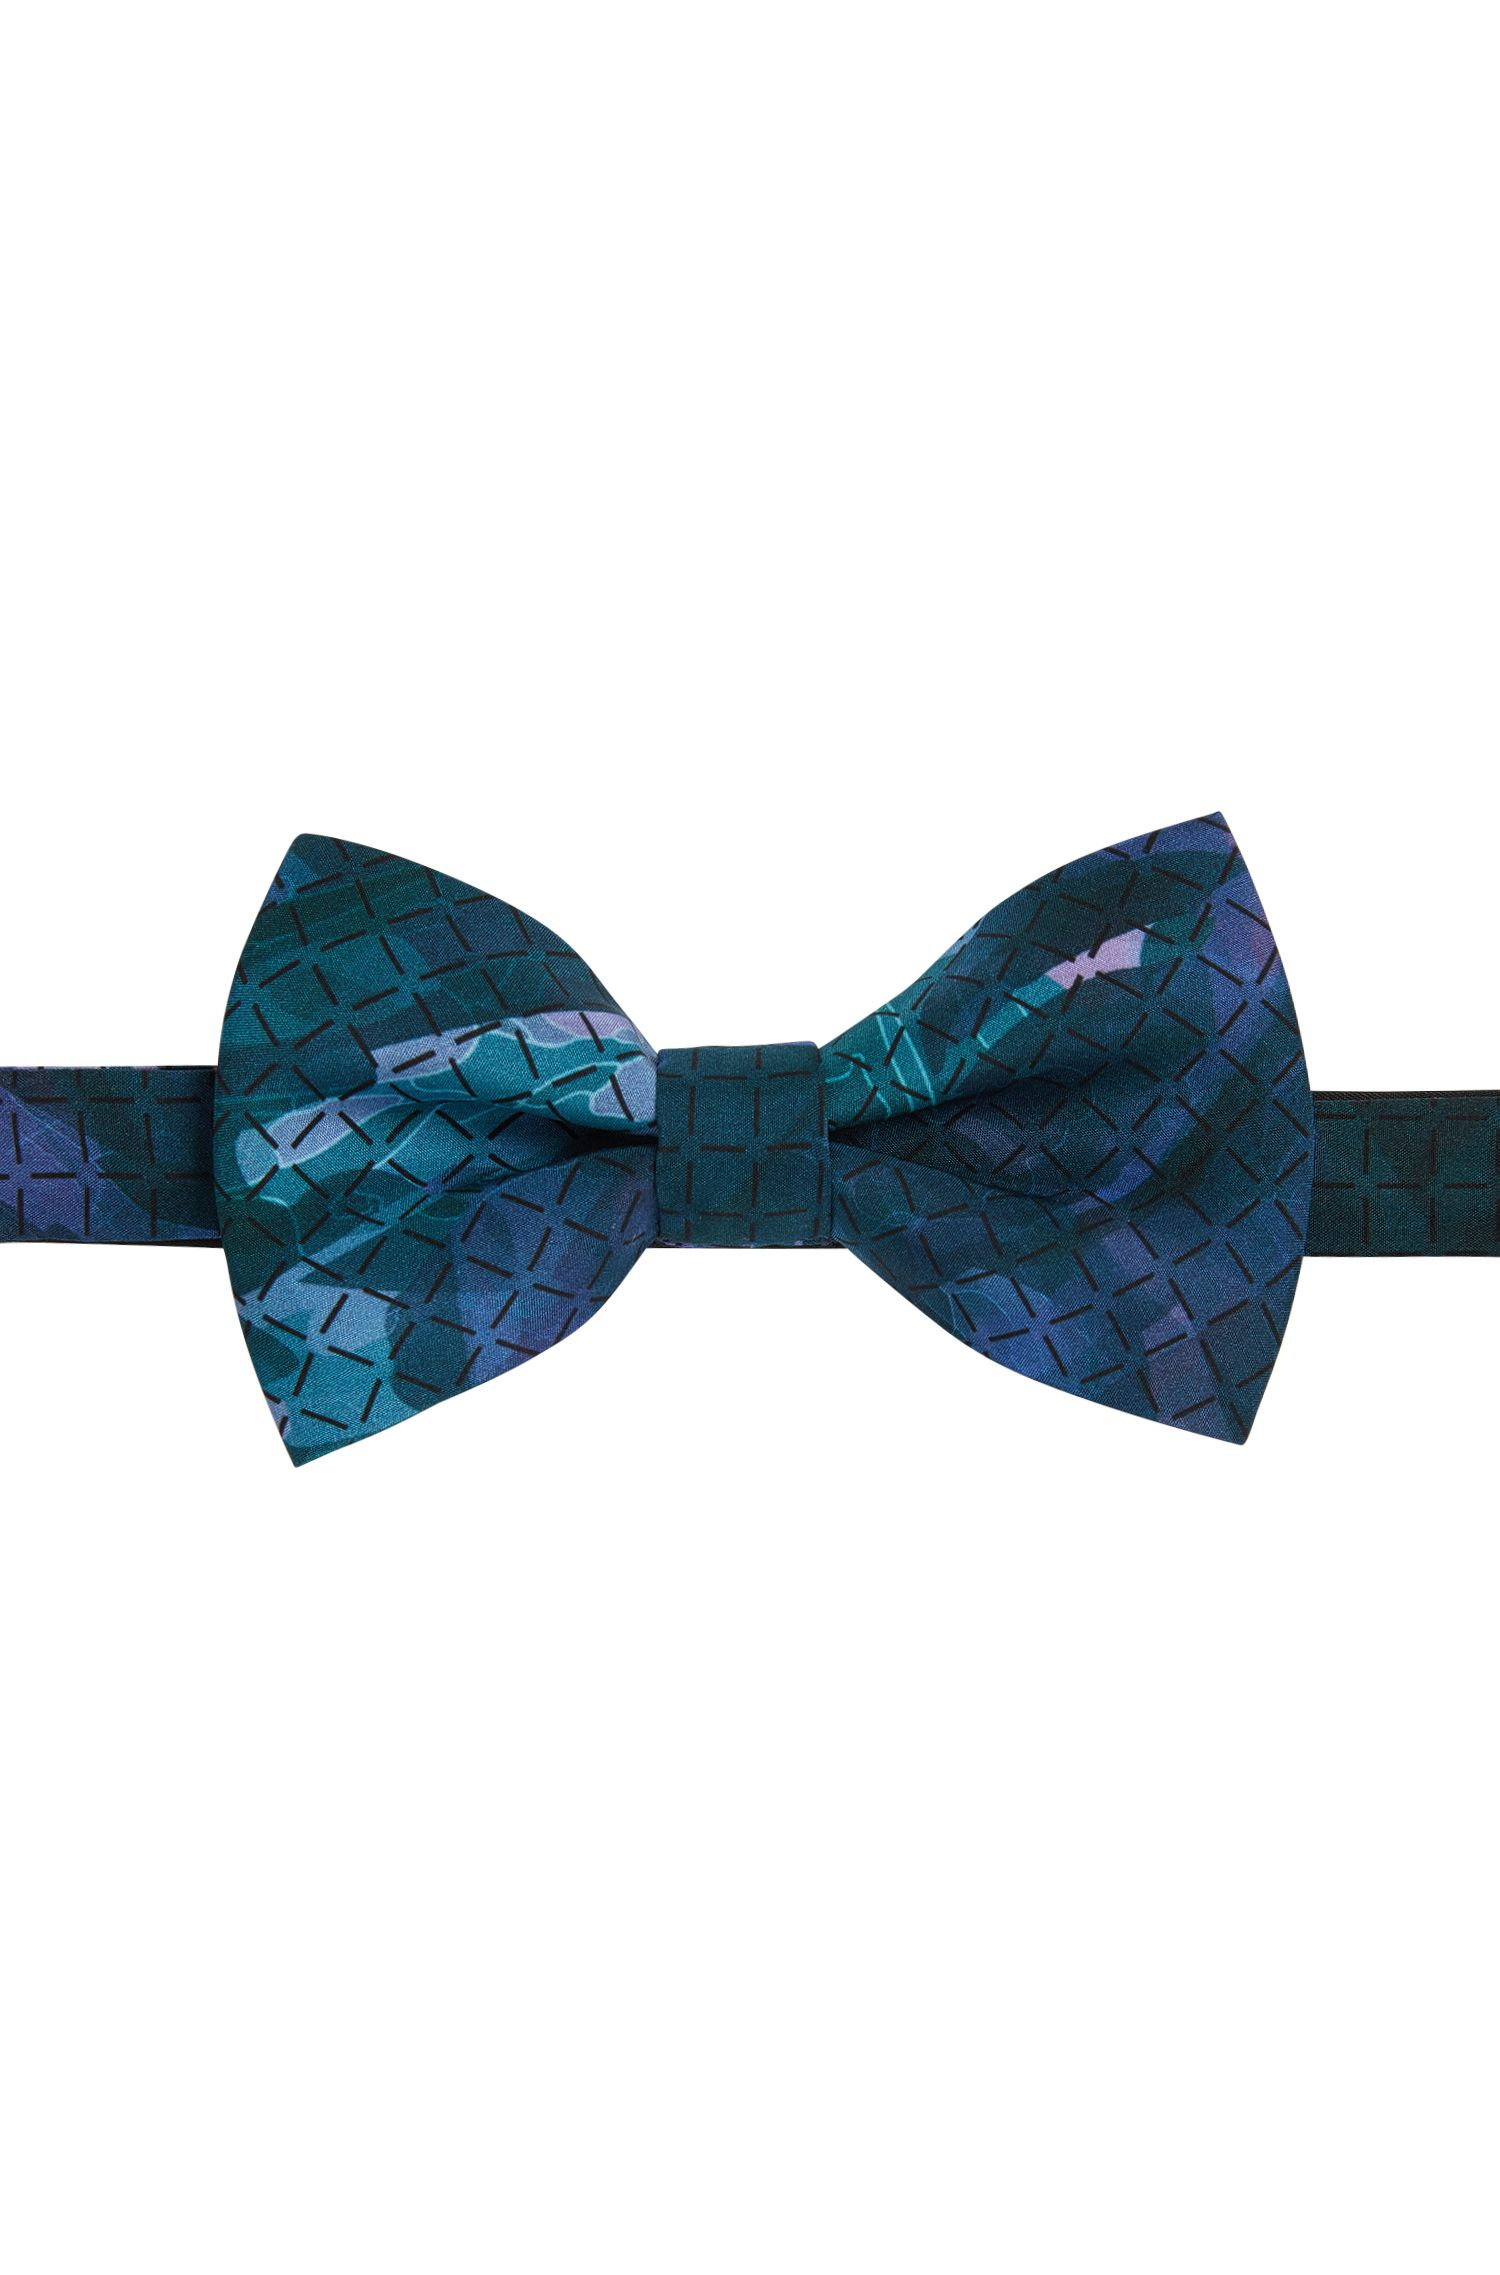 'Big Bow Tie'   Silk Floral Patterned Bow Tie